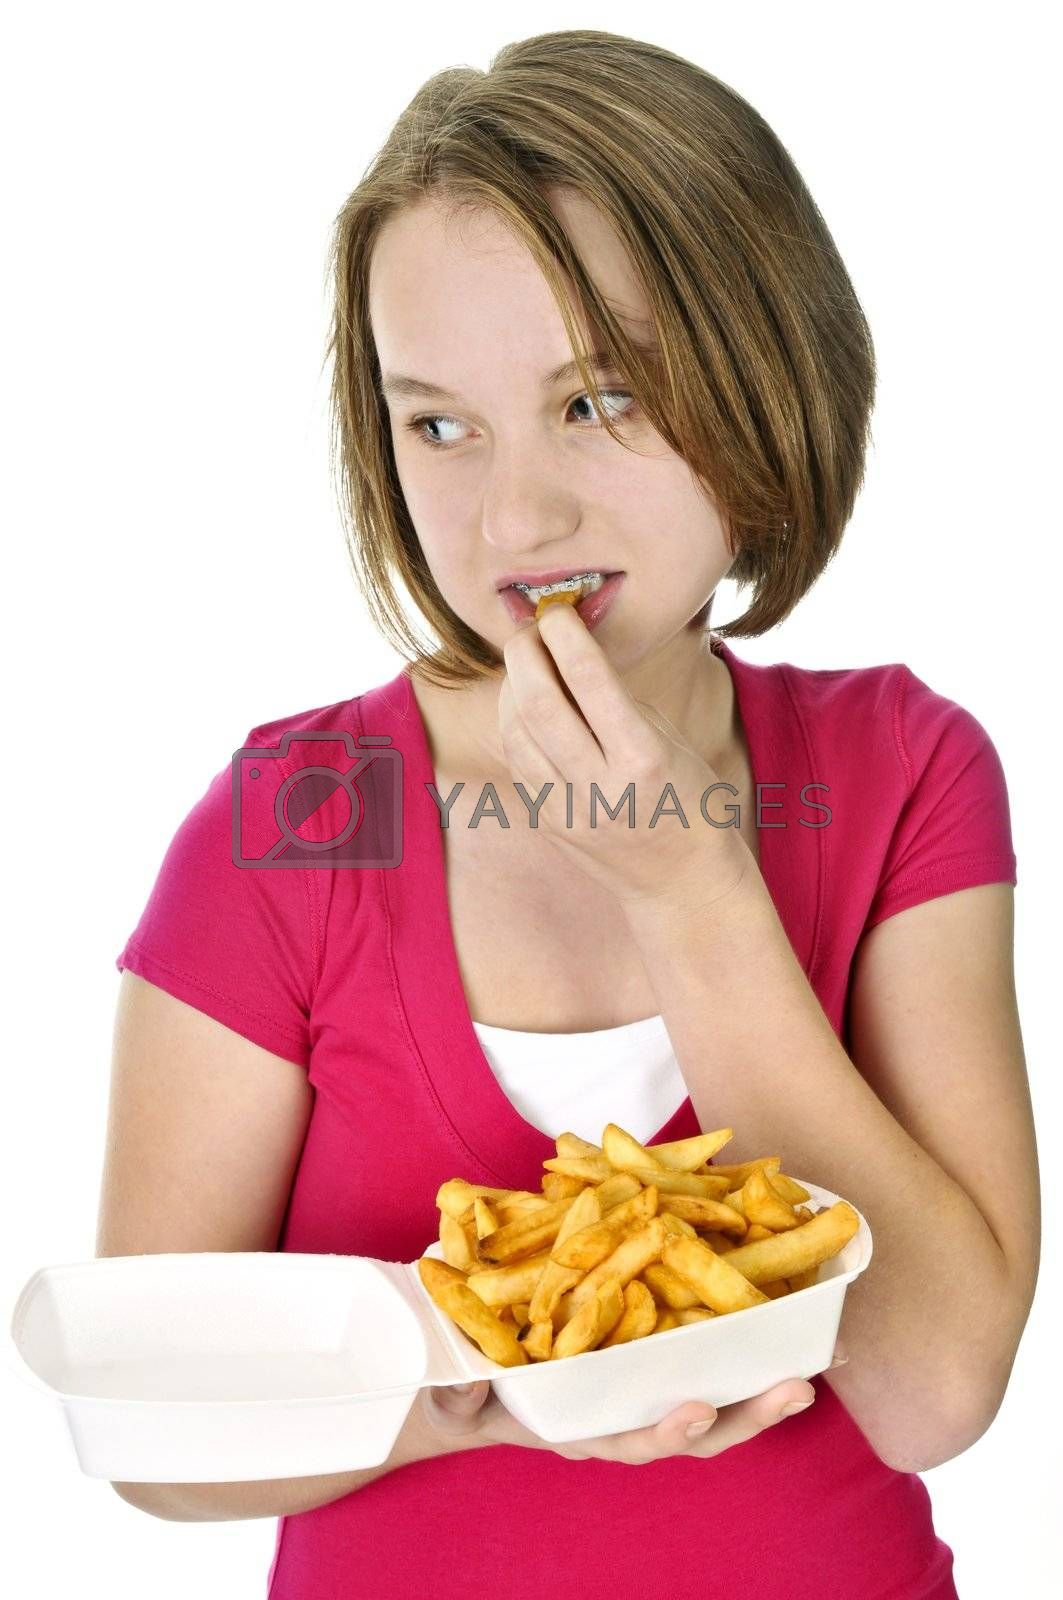 Teenage girl with french fries by elenathewise